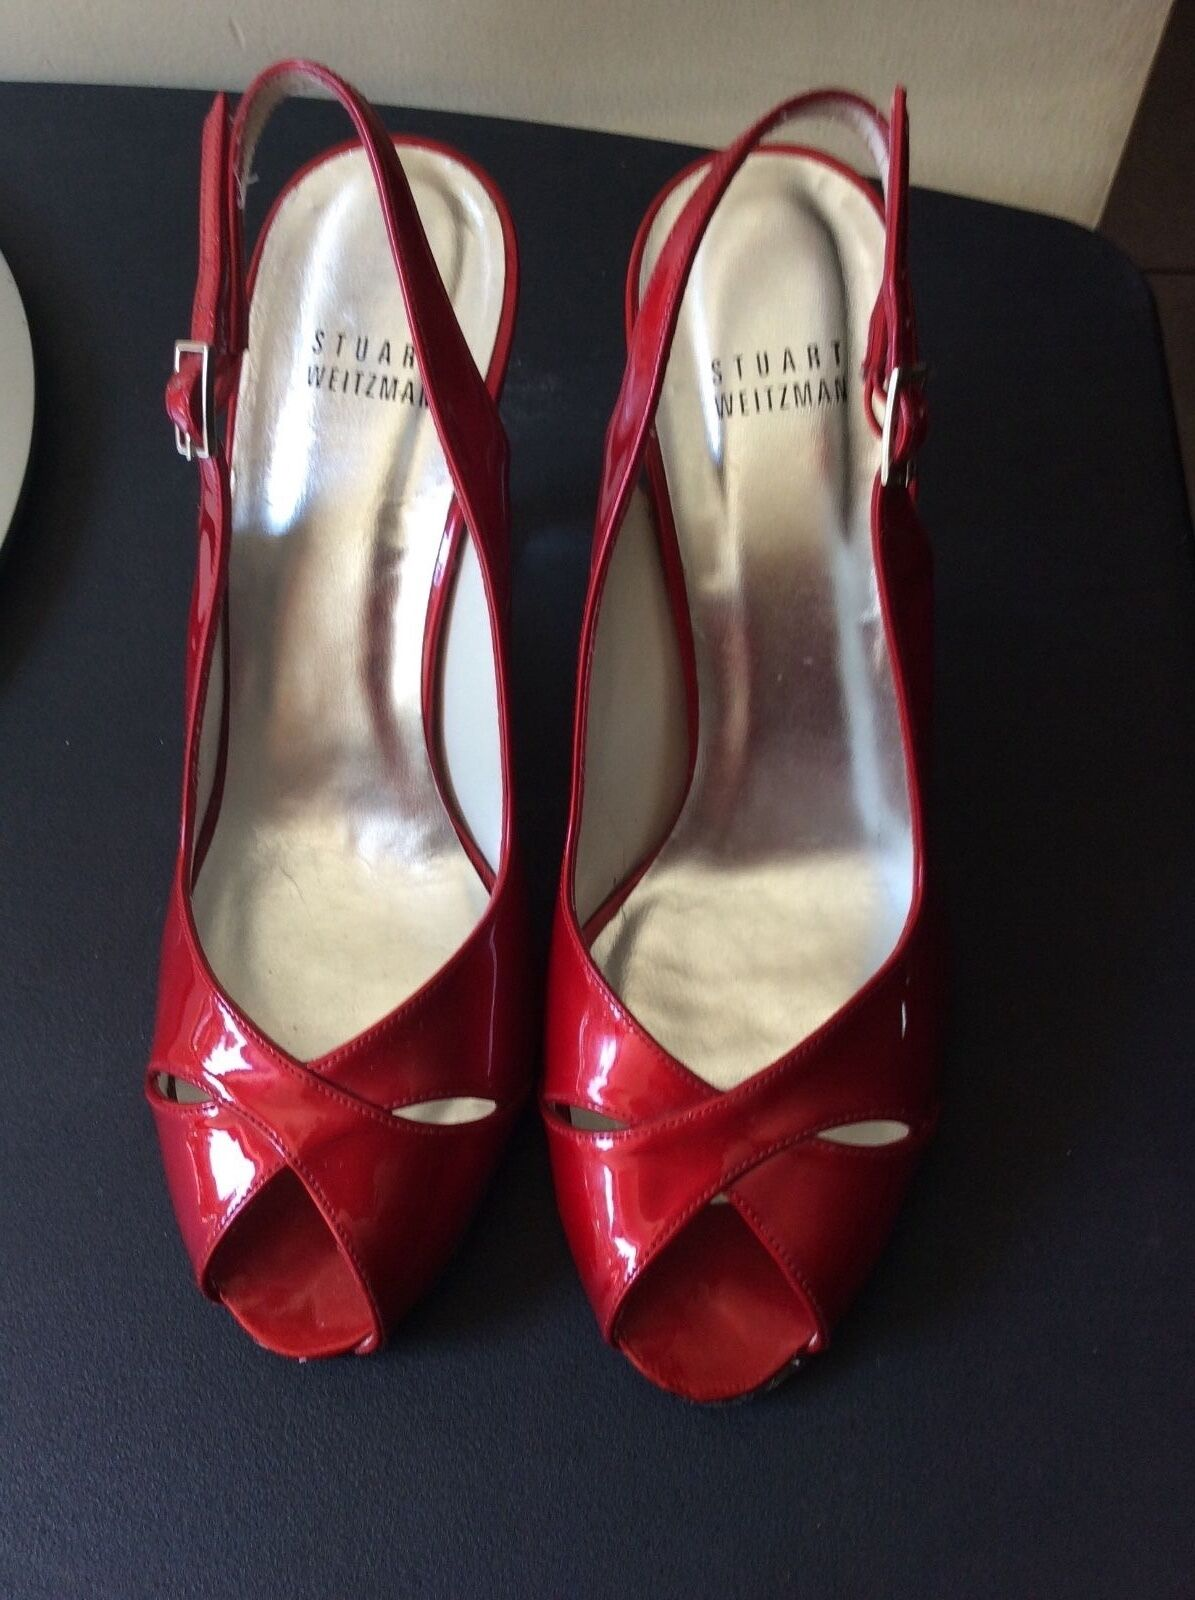 Stuart Weitzman Rosso Patent Leather Clear Wedge Slingback Heel size 8